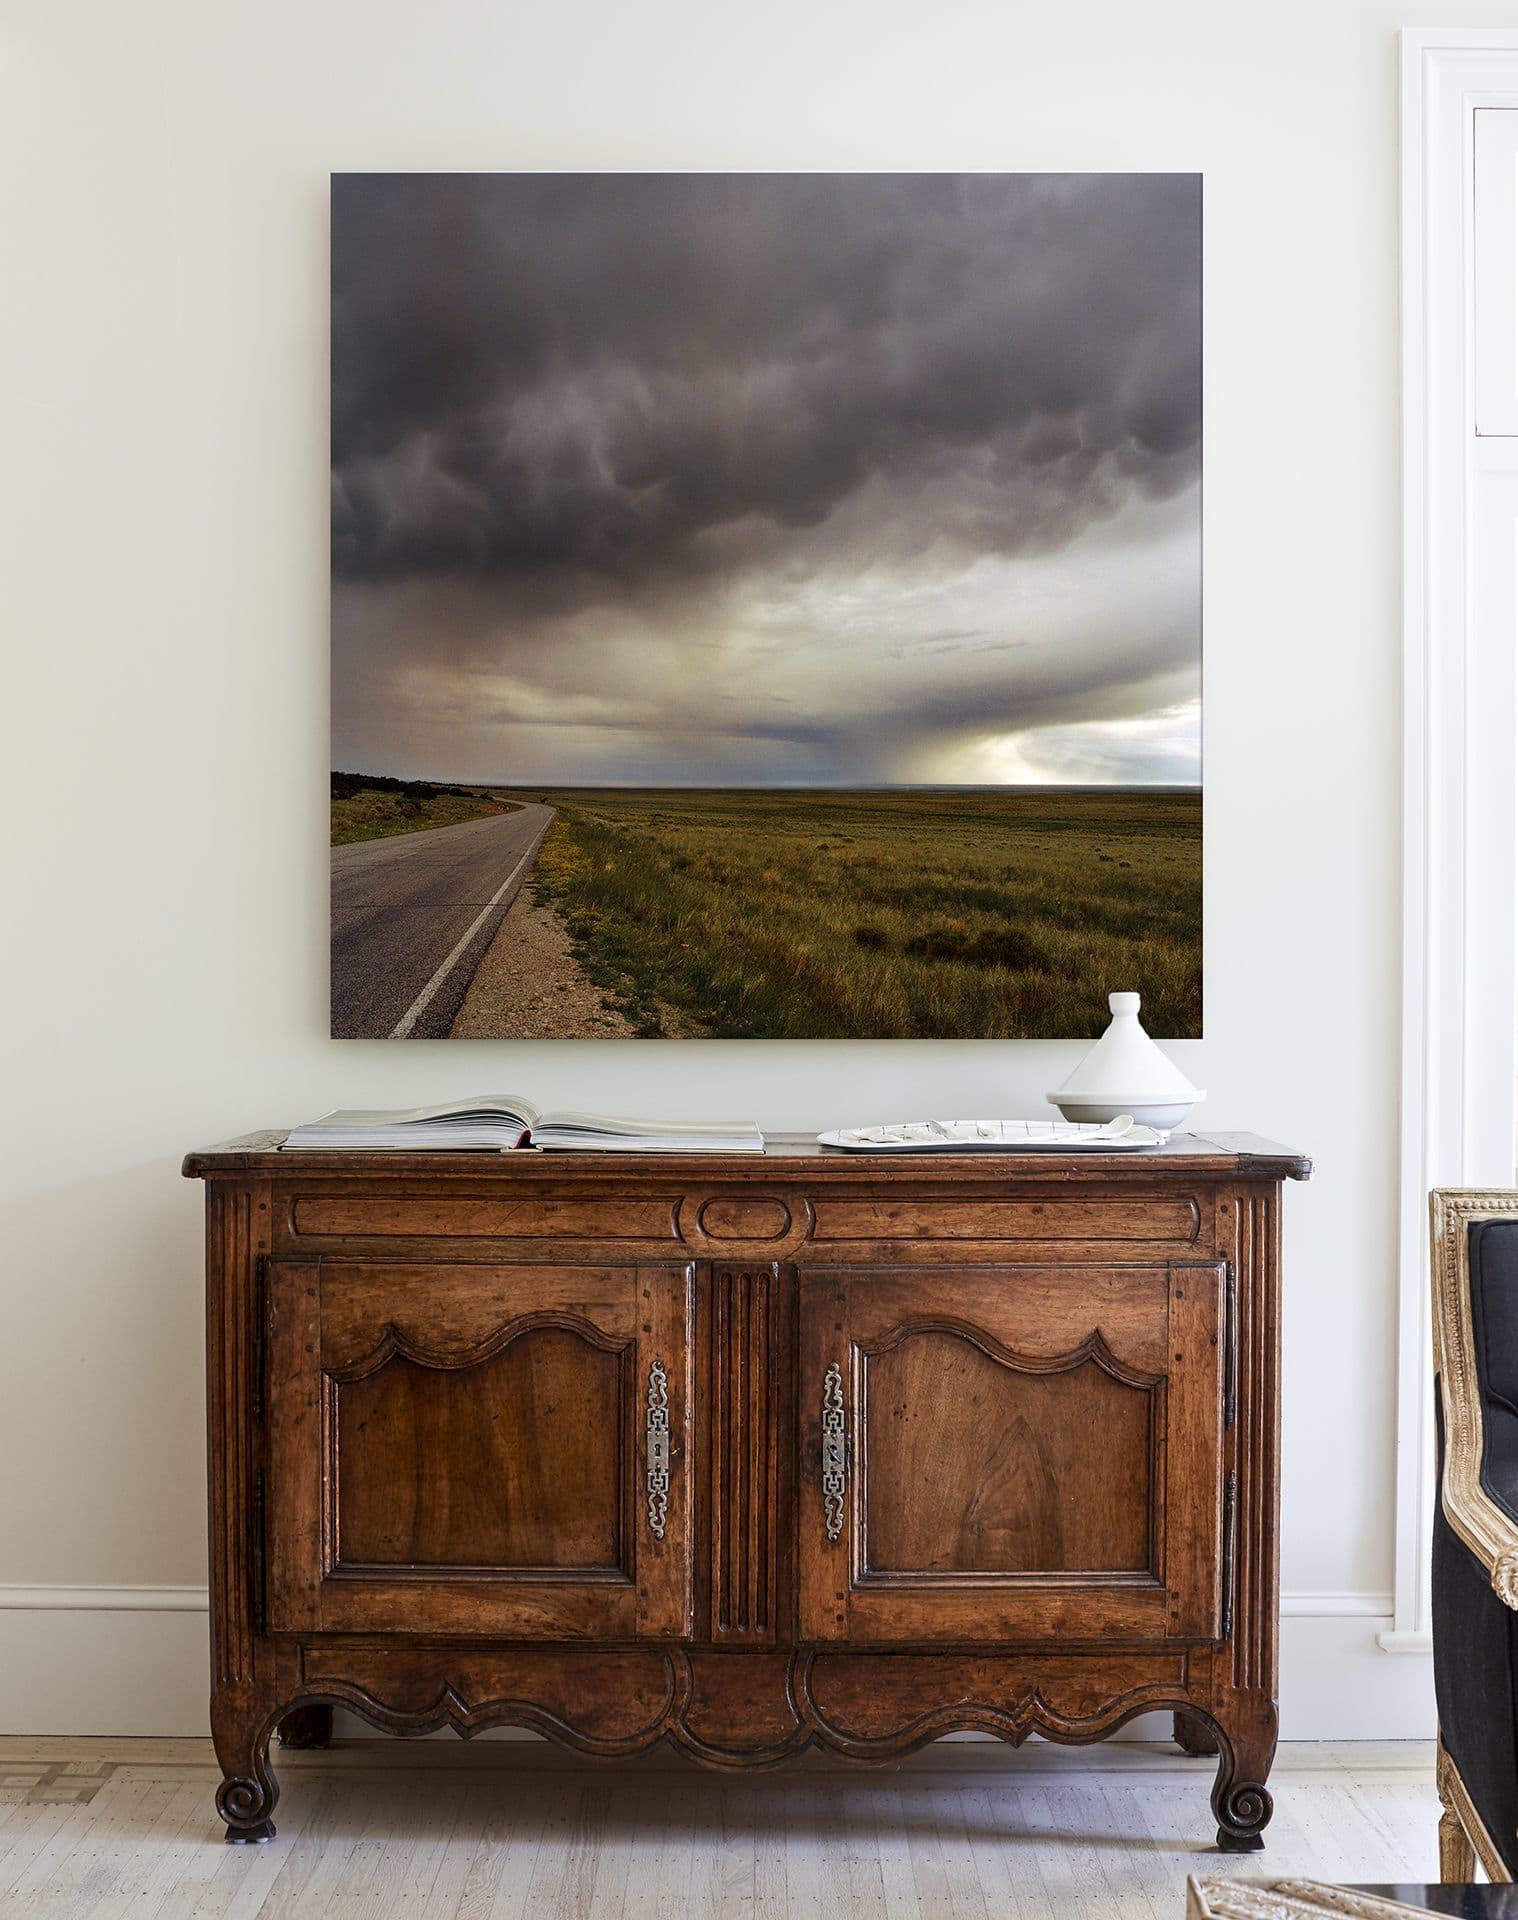 Photography by Tabitha Soren at Private Residence, Boston - Weathering - Sky, Clouds